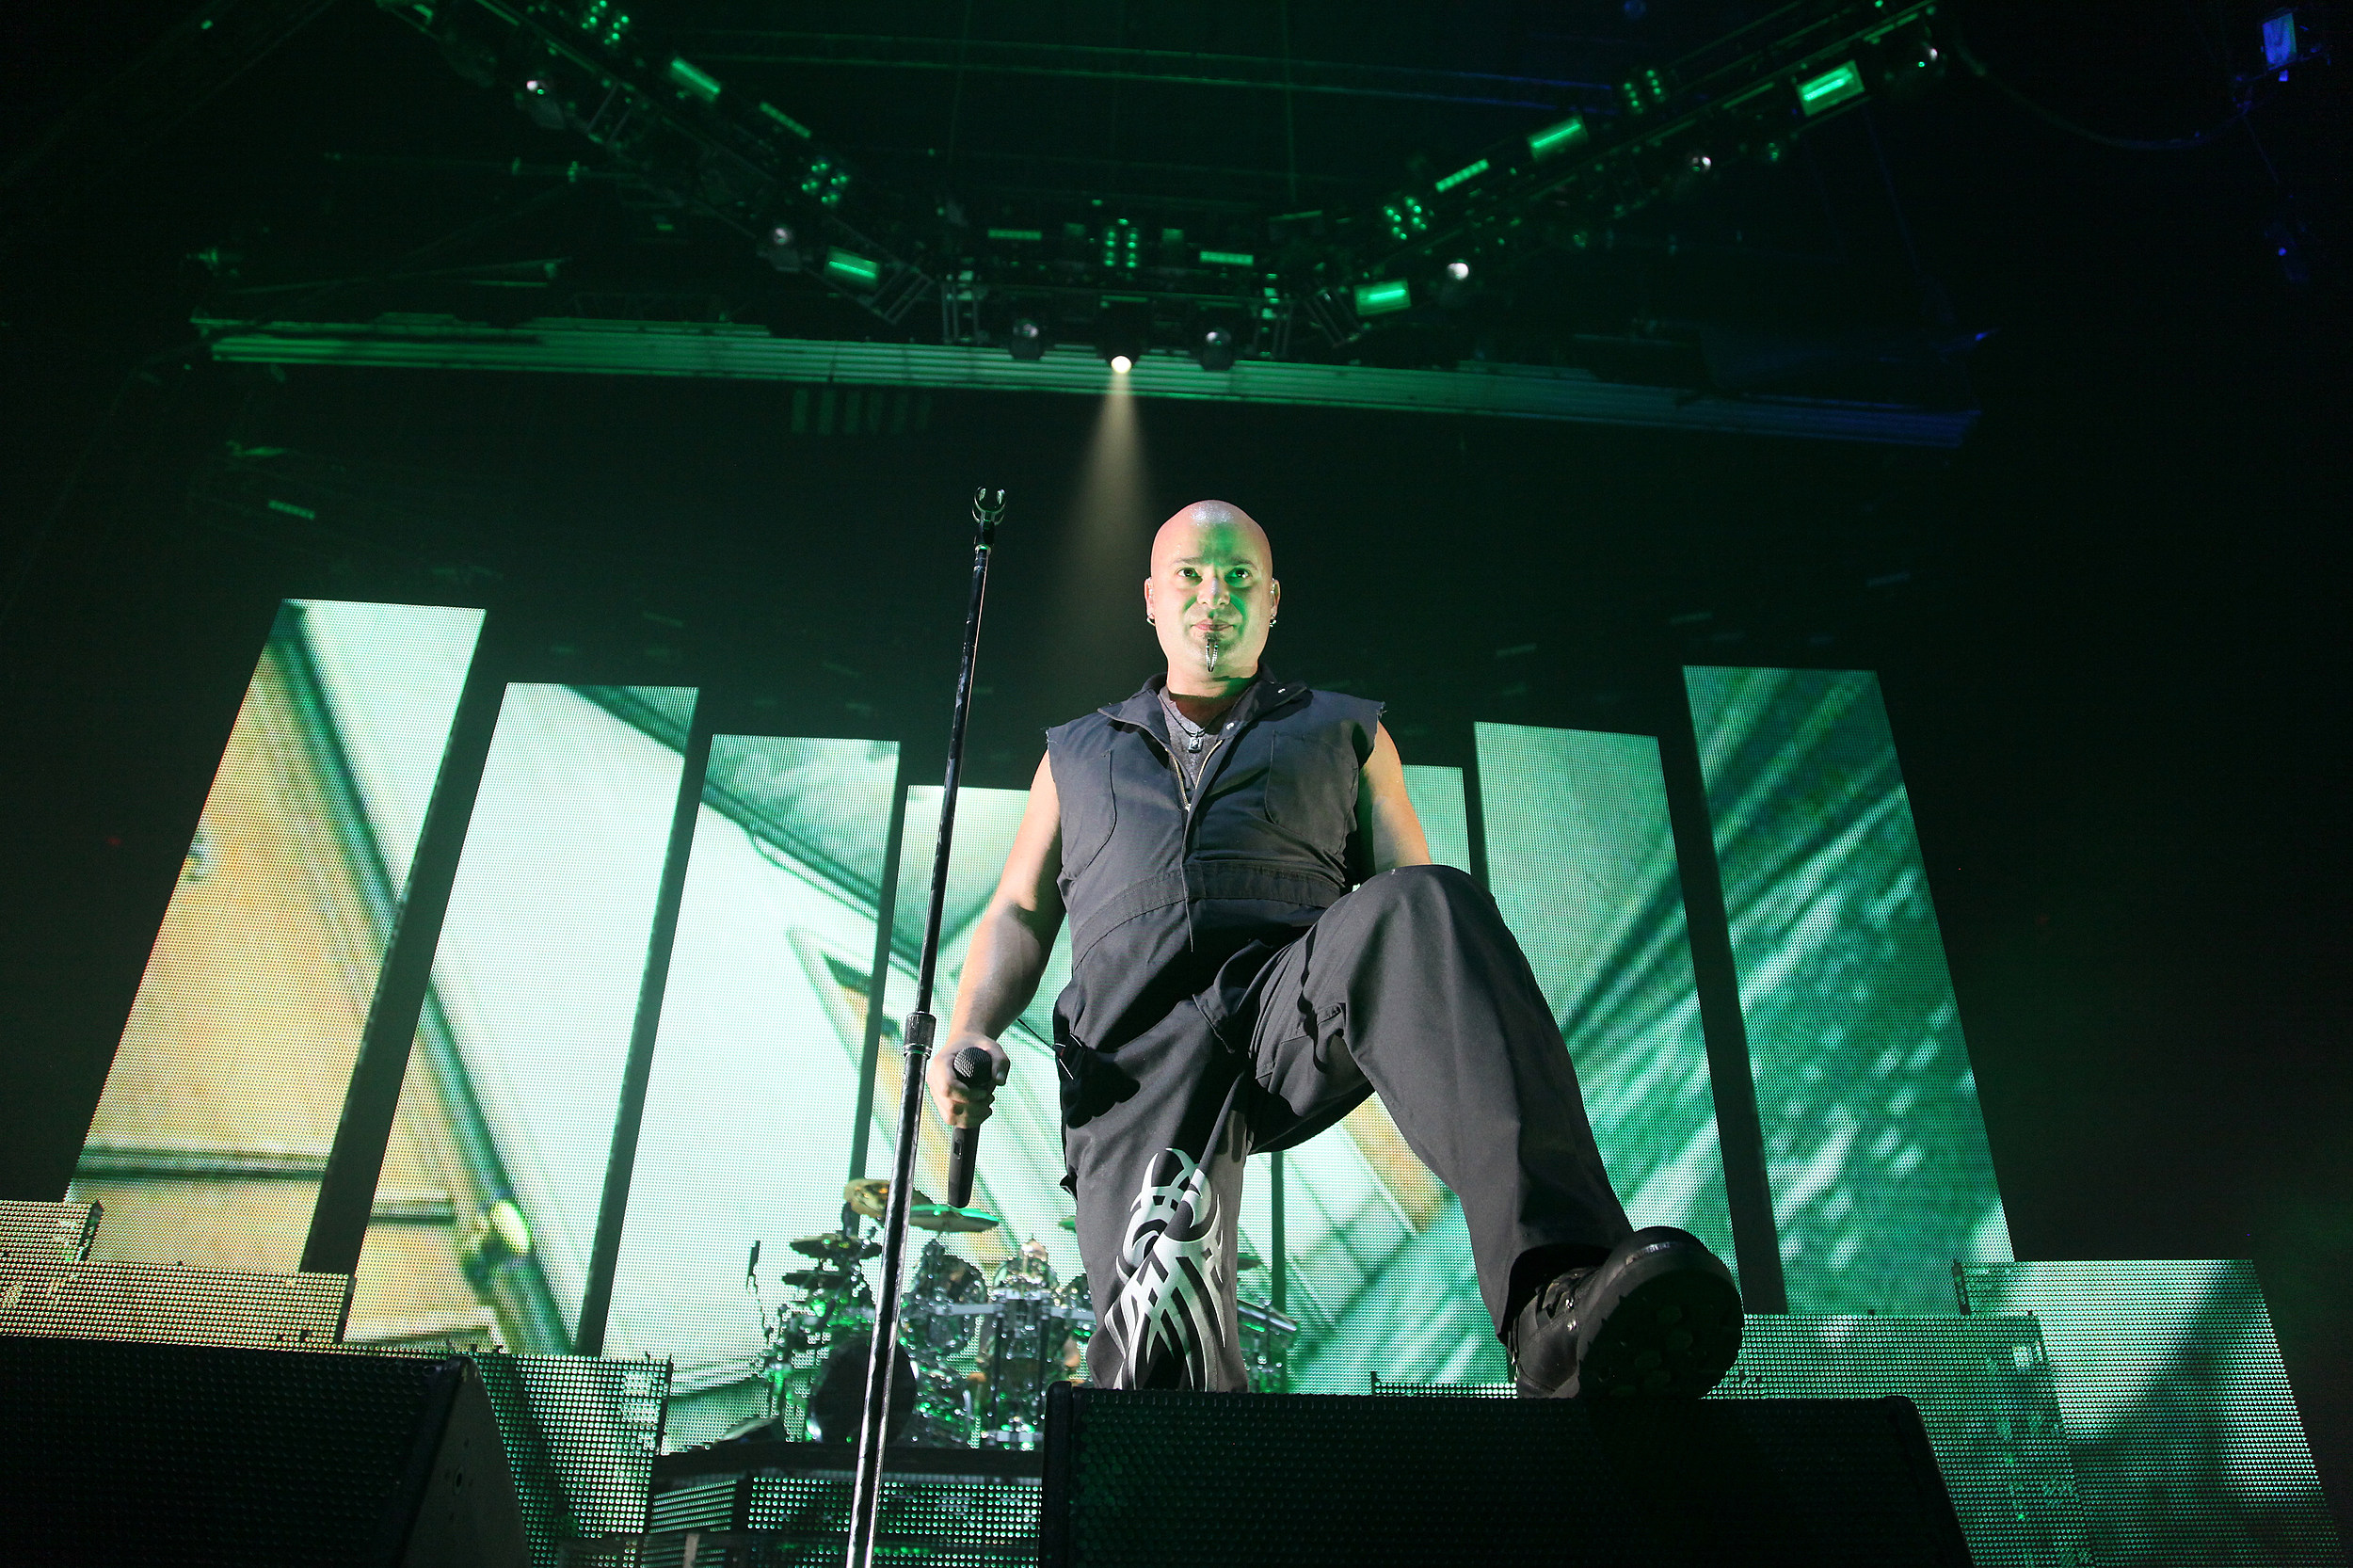 Dave Draiman parodied in new video.